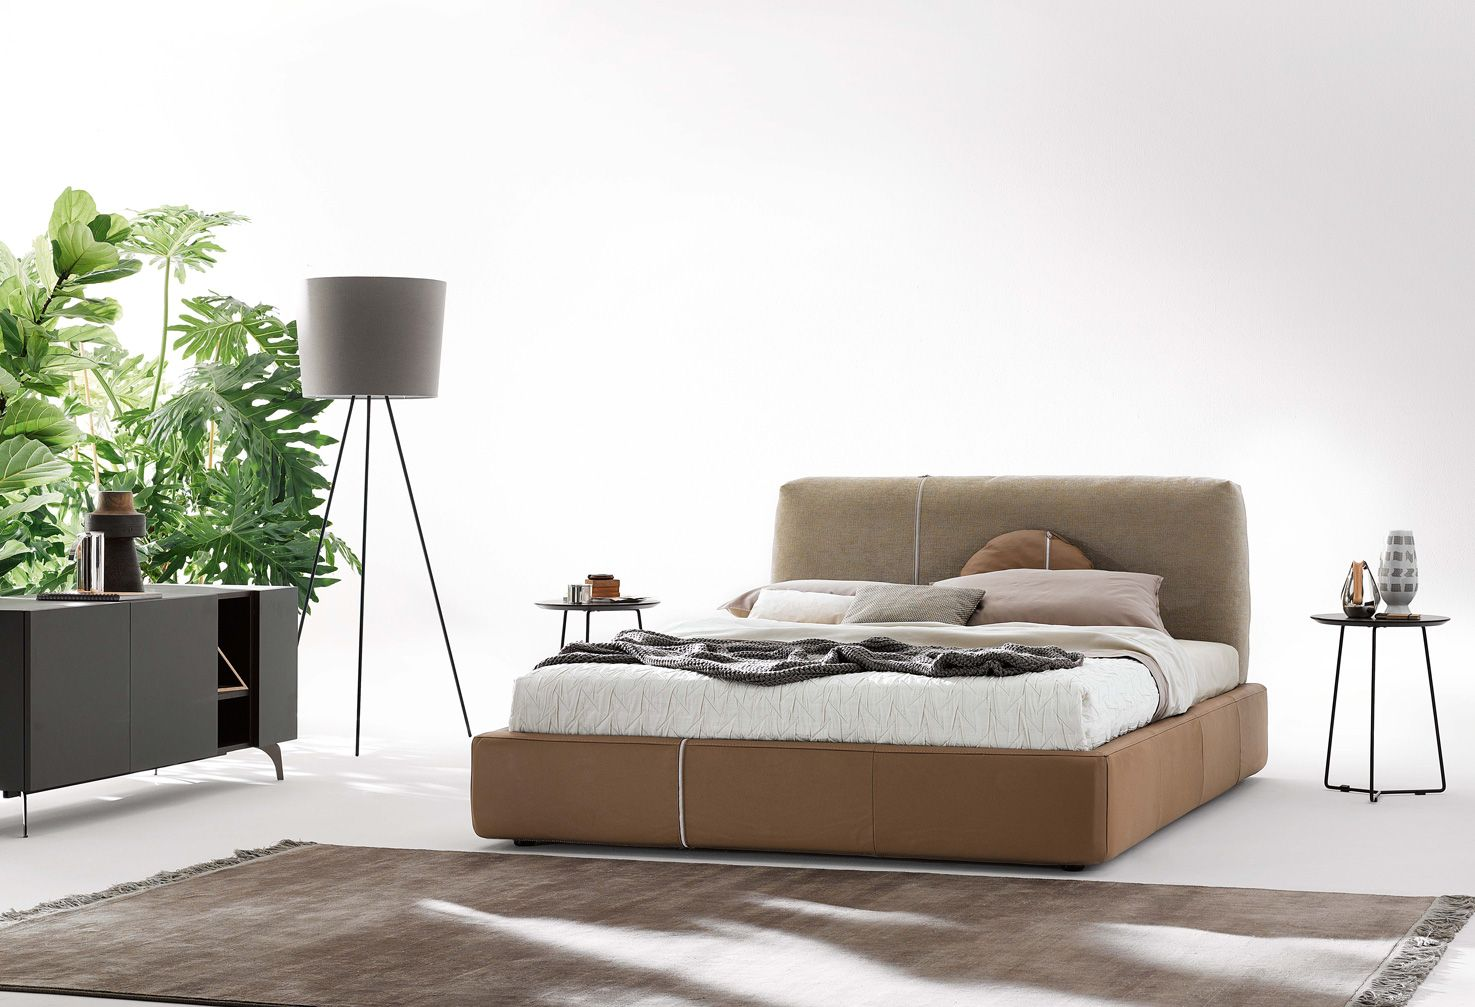 #Sanders is available in one or two colours, in manmade or genuine leather or in the Mix version consisting in a fabric #headboard and a leather #bed #frame. #ditreitalia #newproducts #bed #design #cozy